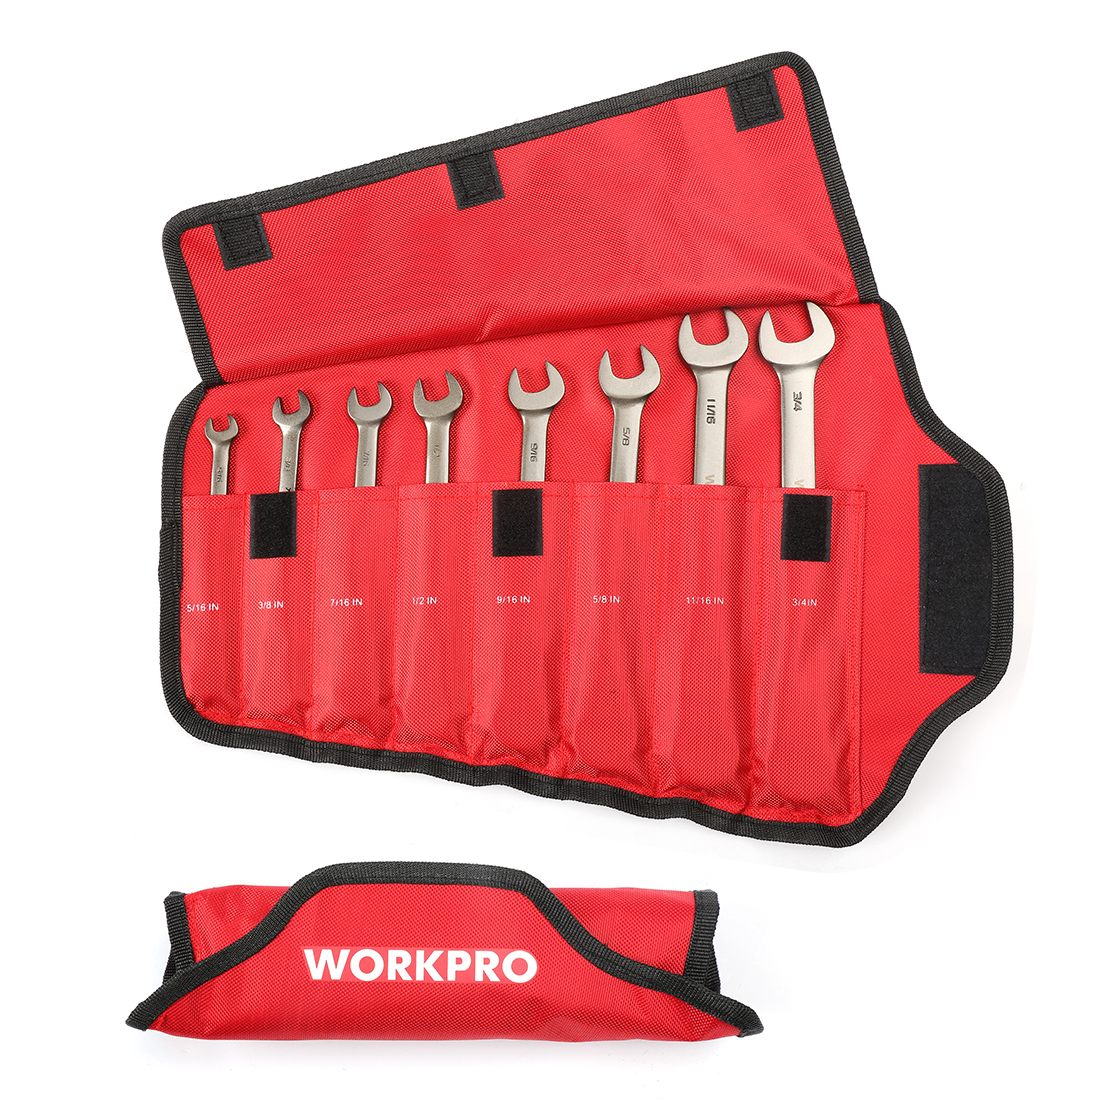 WORKPRO Wrench-Set Spanners-Set Combination Ratcheting Car-Repair-Tools Metric/sae Flex-Head